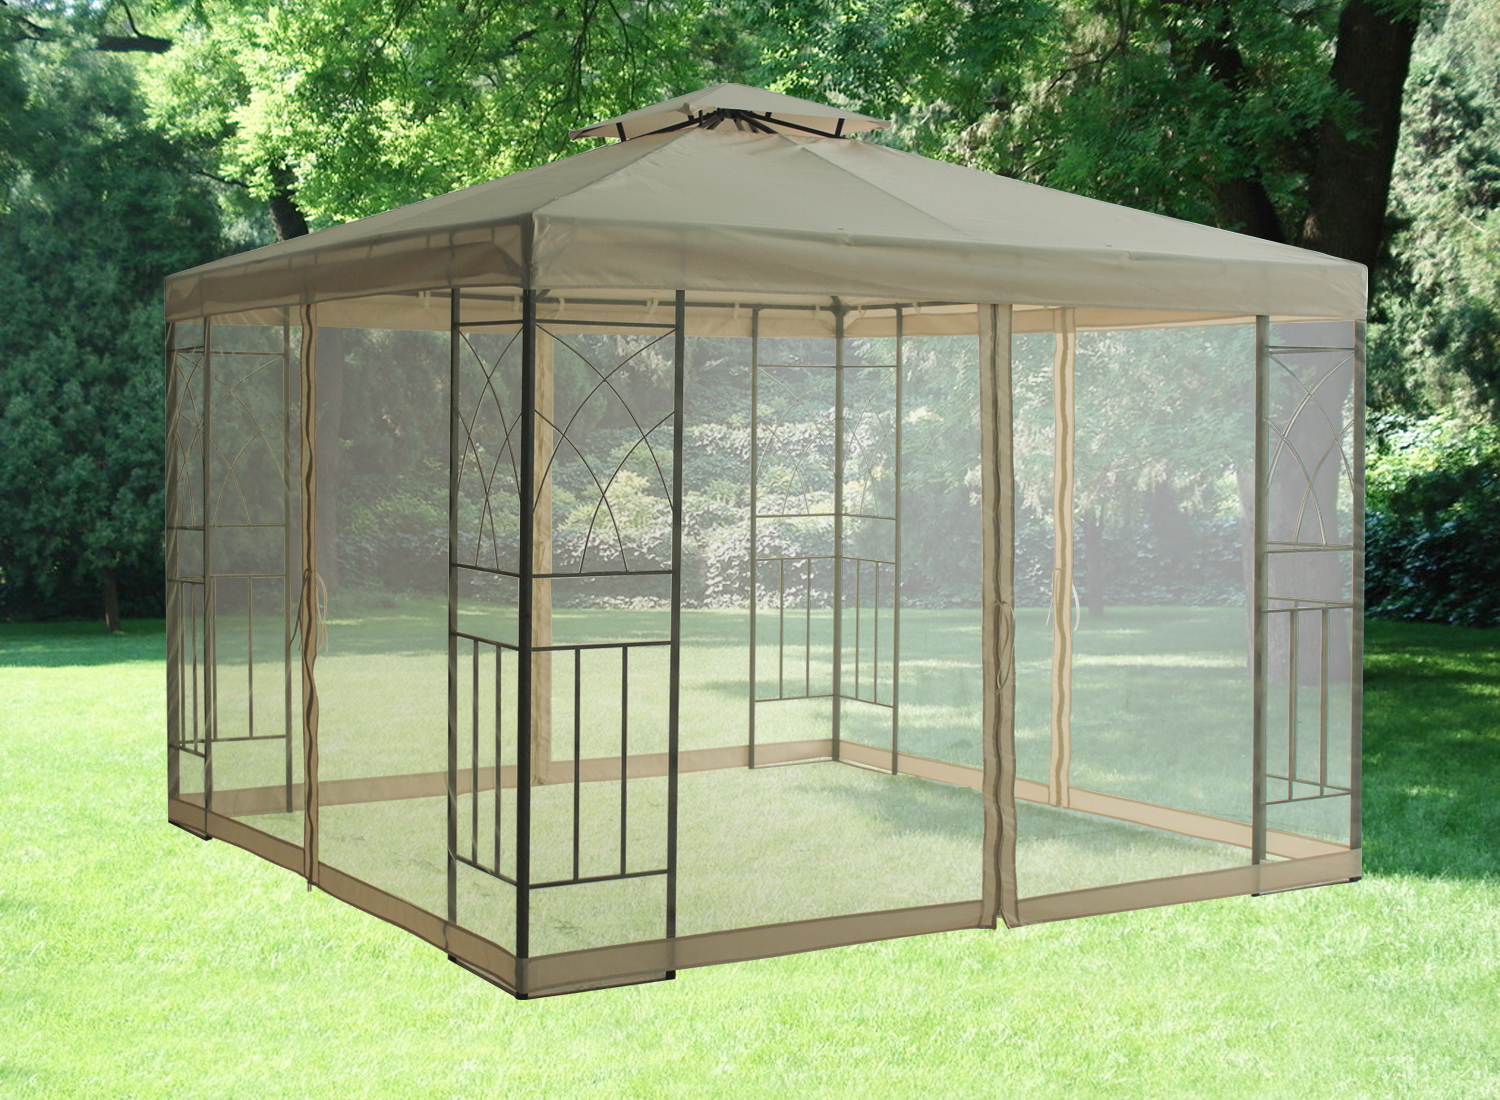 Pavilion metal gazebo sun shade marquee mosquito net fly - Insect netting for gazebo ...